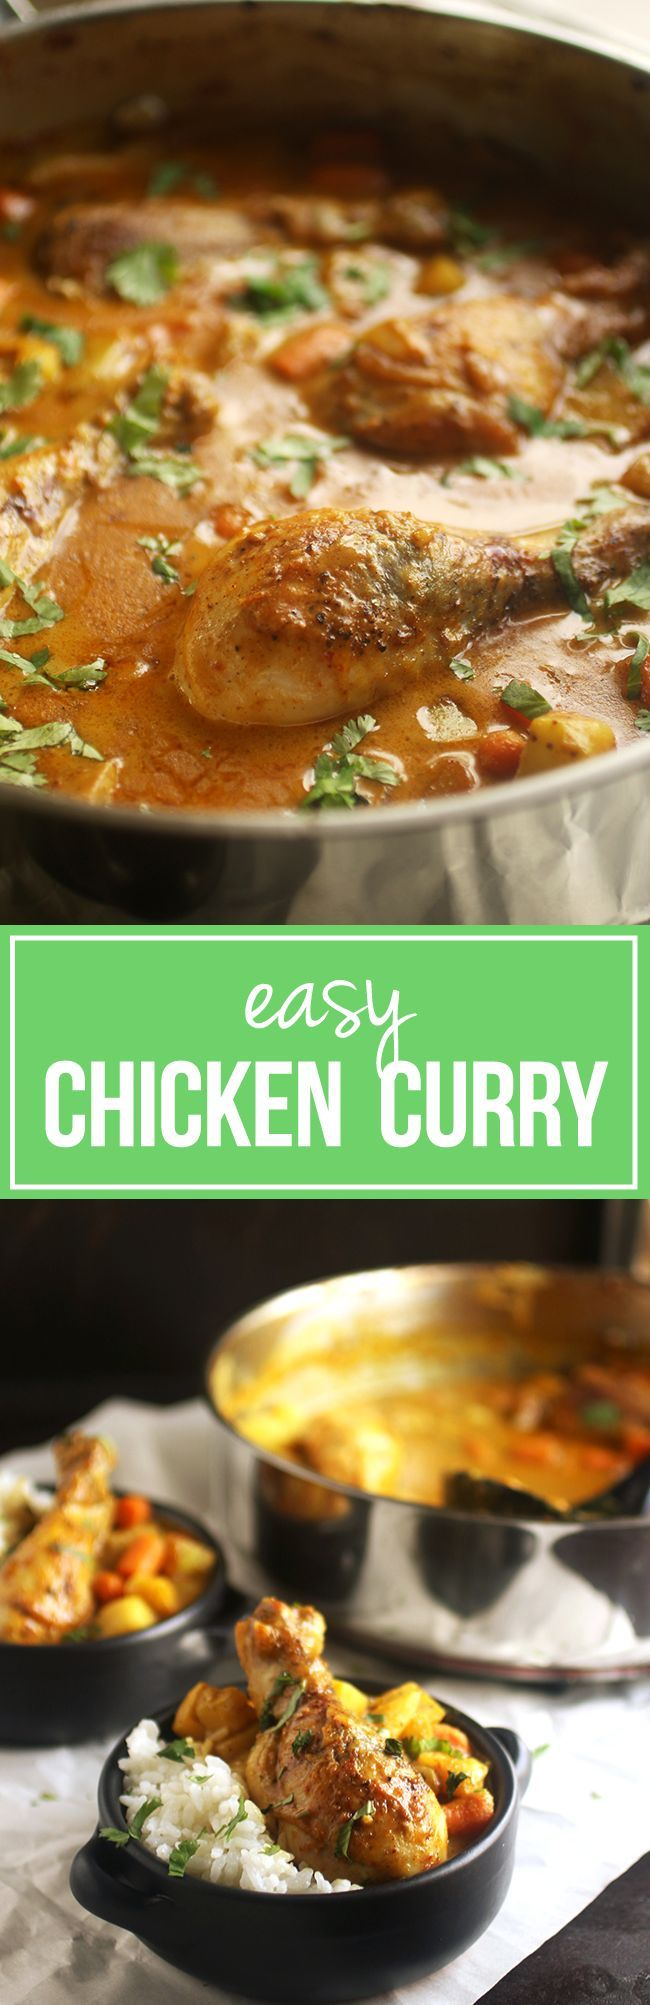 Easy Chicken Curry | Have weeknight meals on the table in no time with this quick and easy chicken recipe for delicious chicken curry!